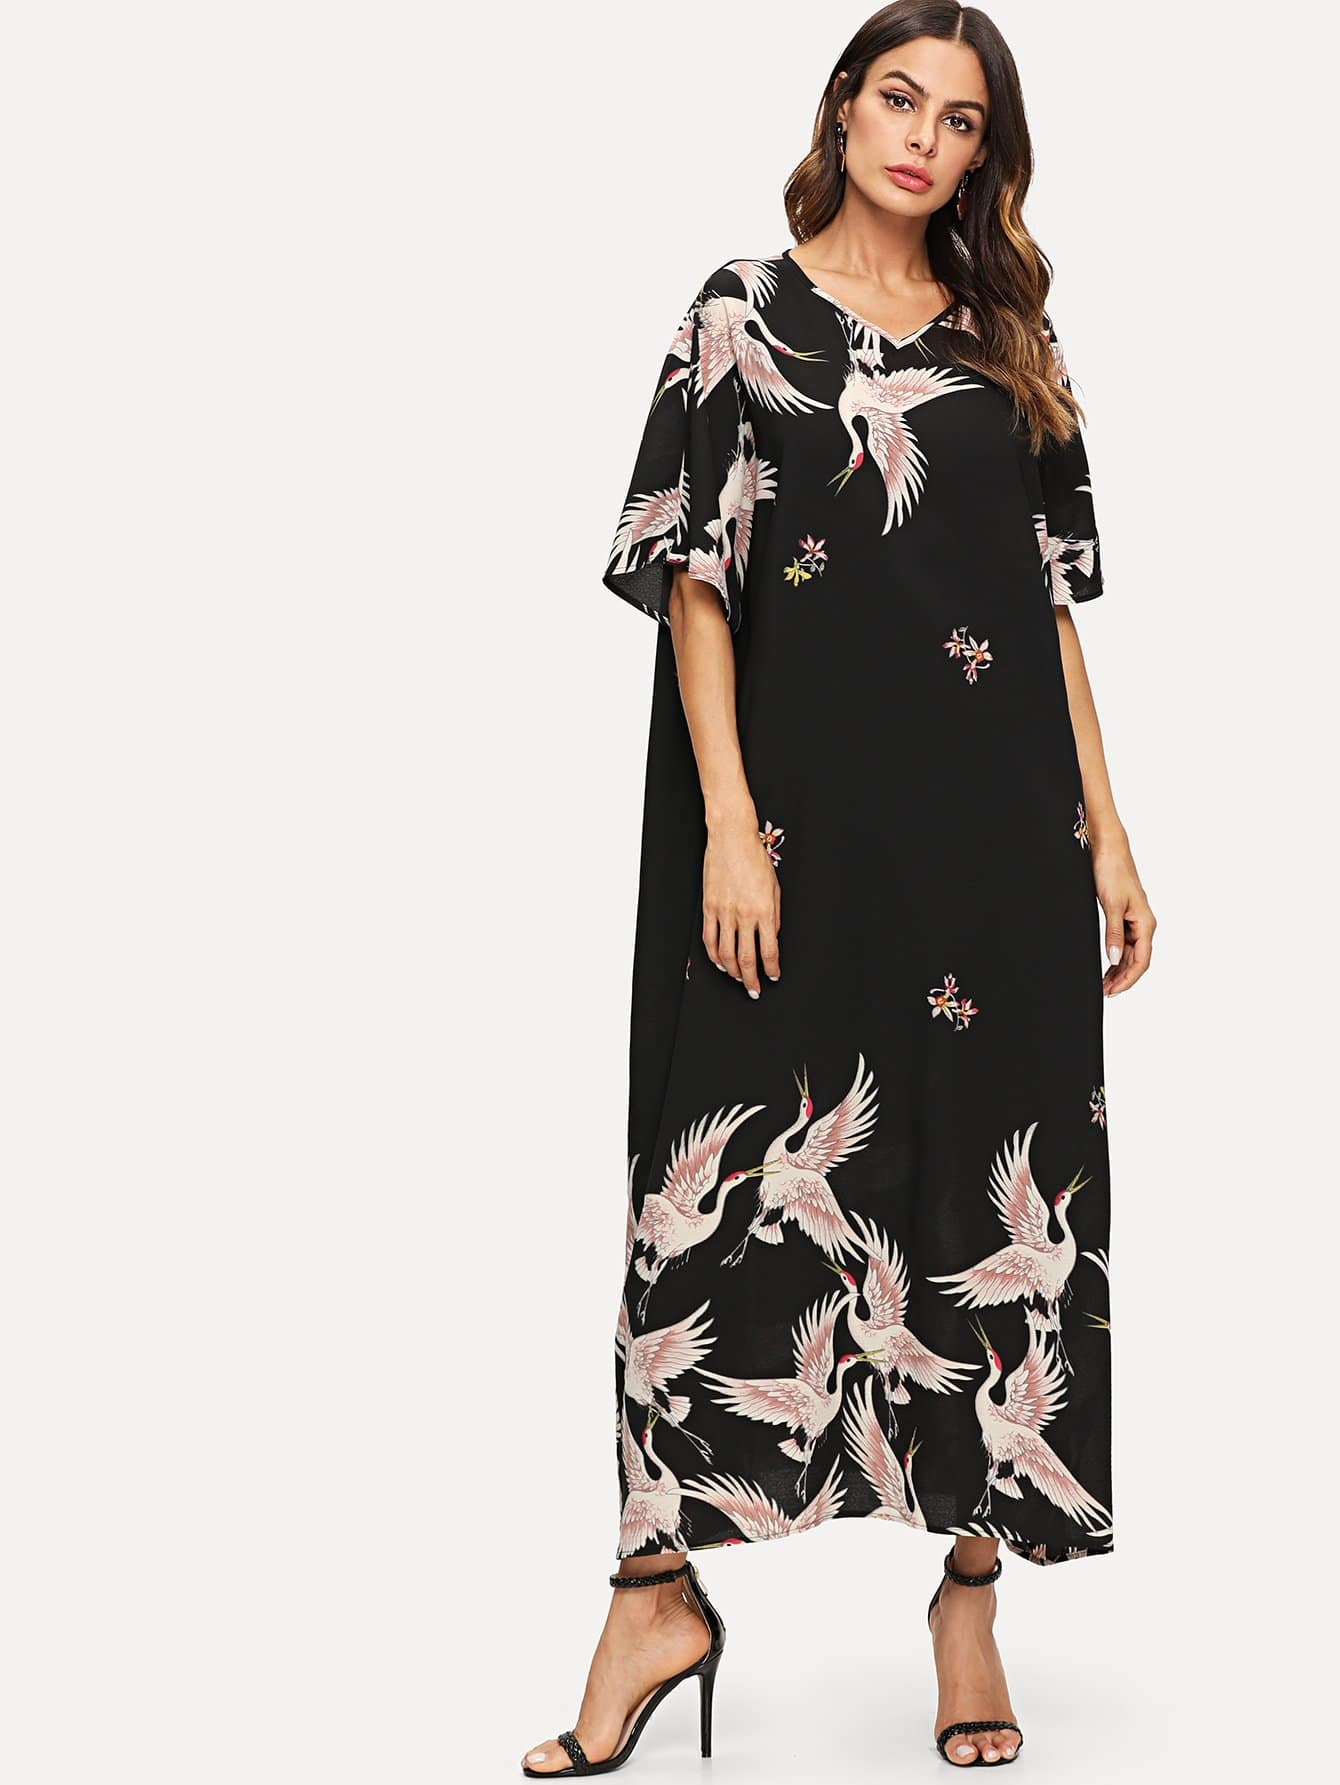 Red-crowned Crane and Floral Print Oversized Dress iron crowned